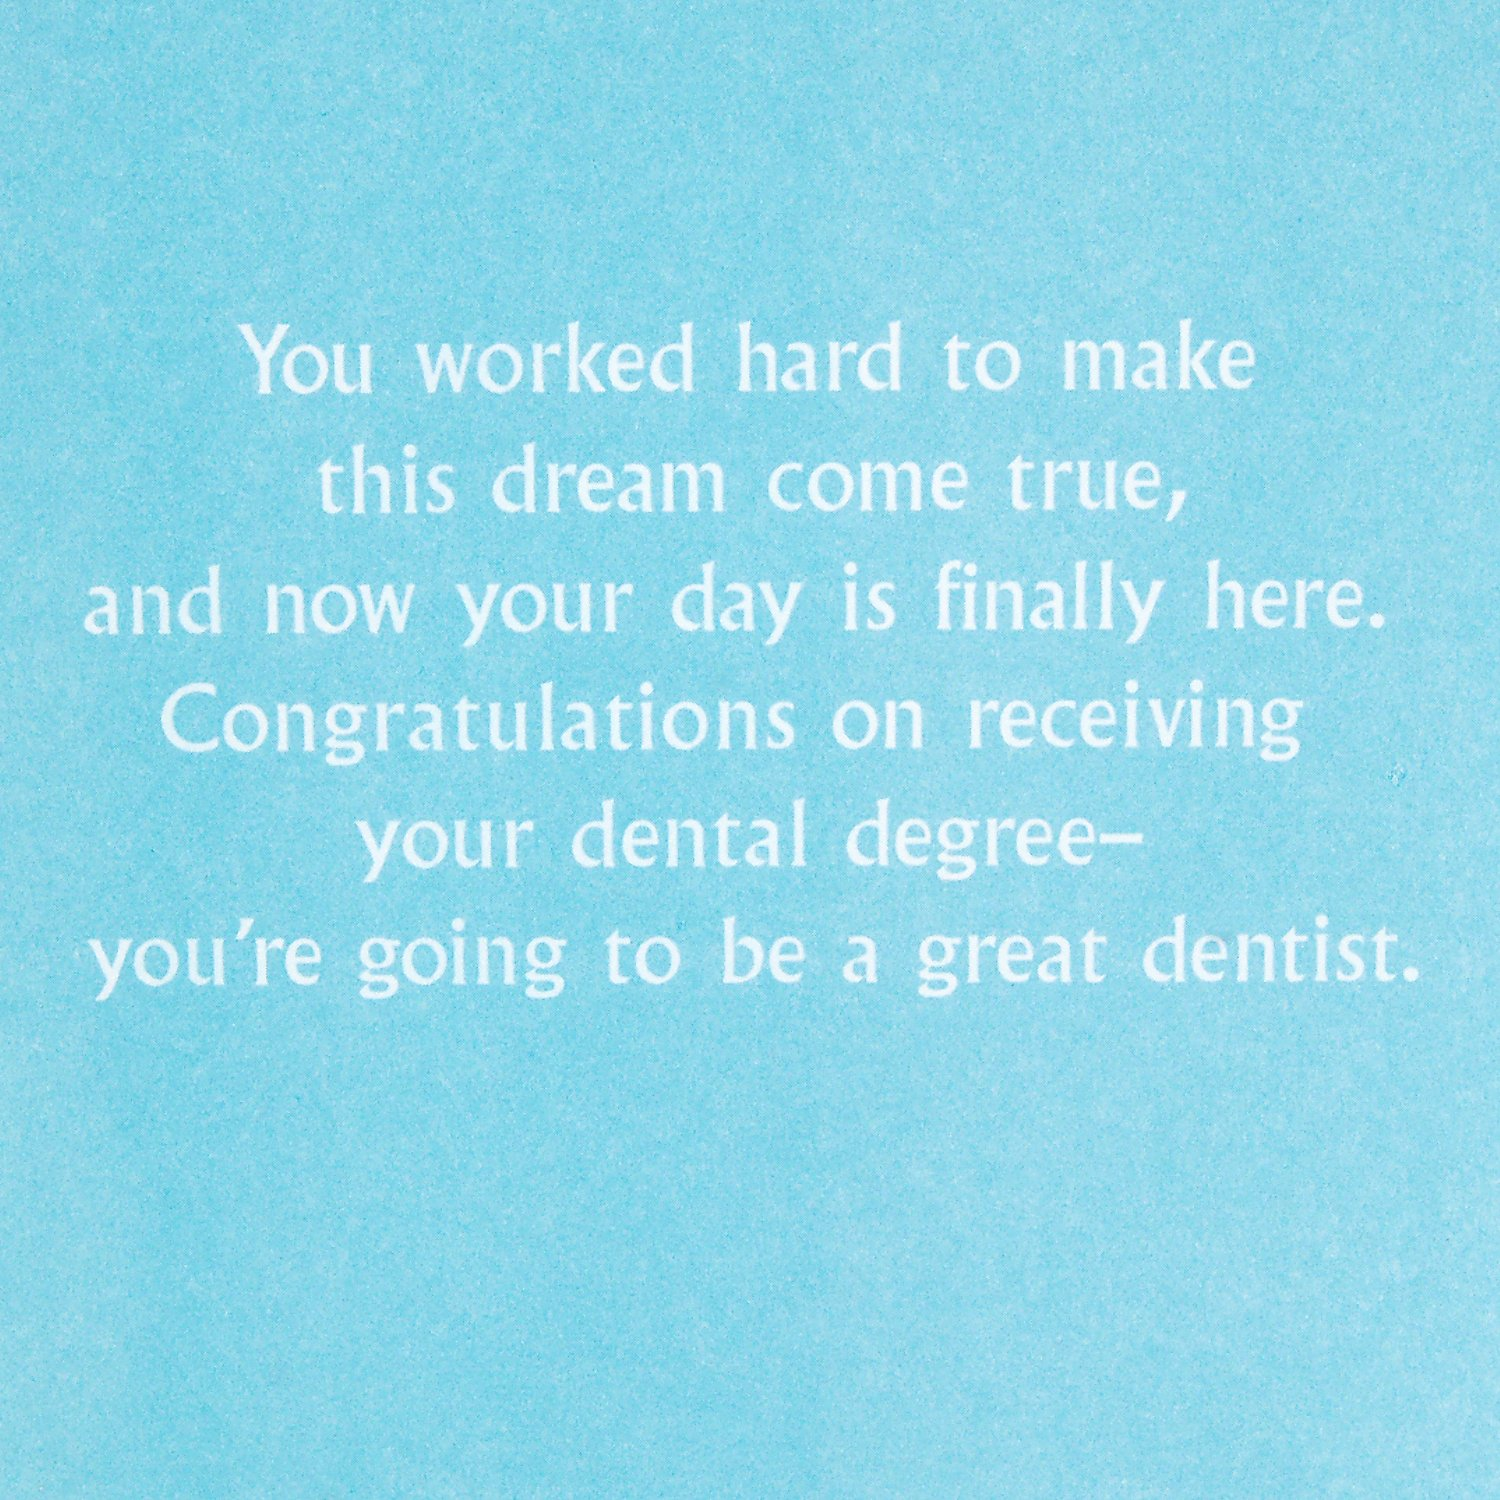 Hallmark Dental School Graduation Card (New Dentist Congratulations)